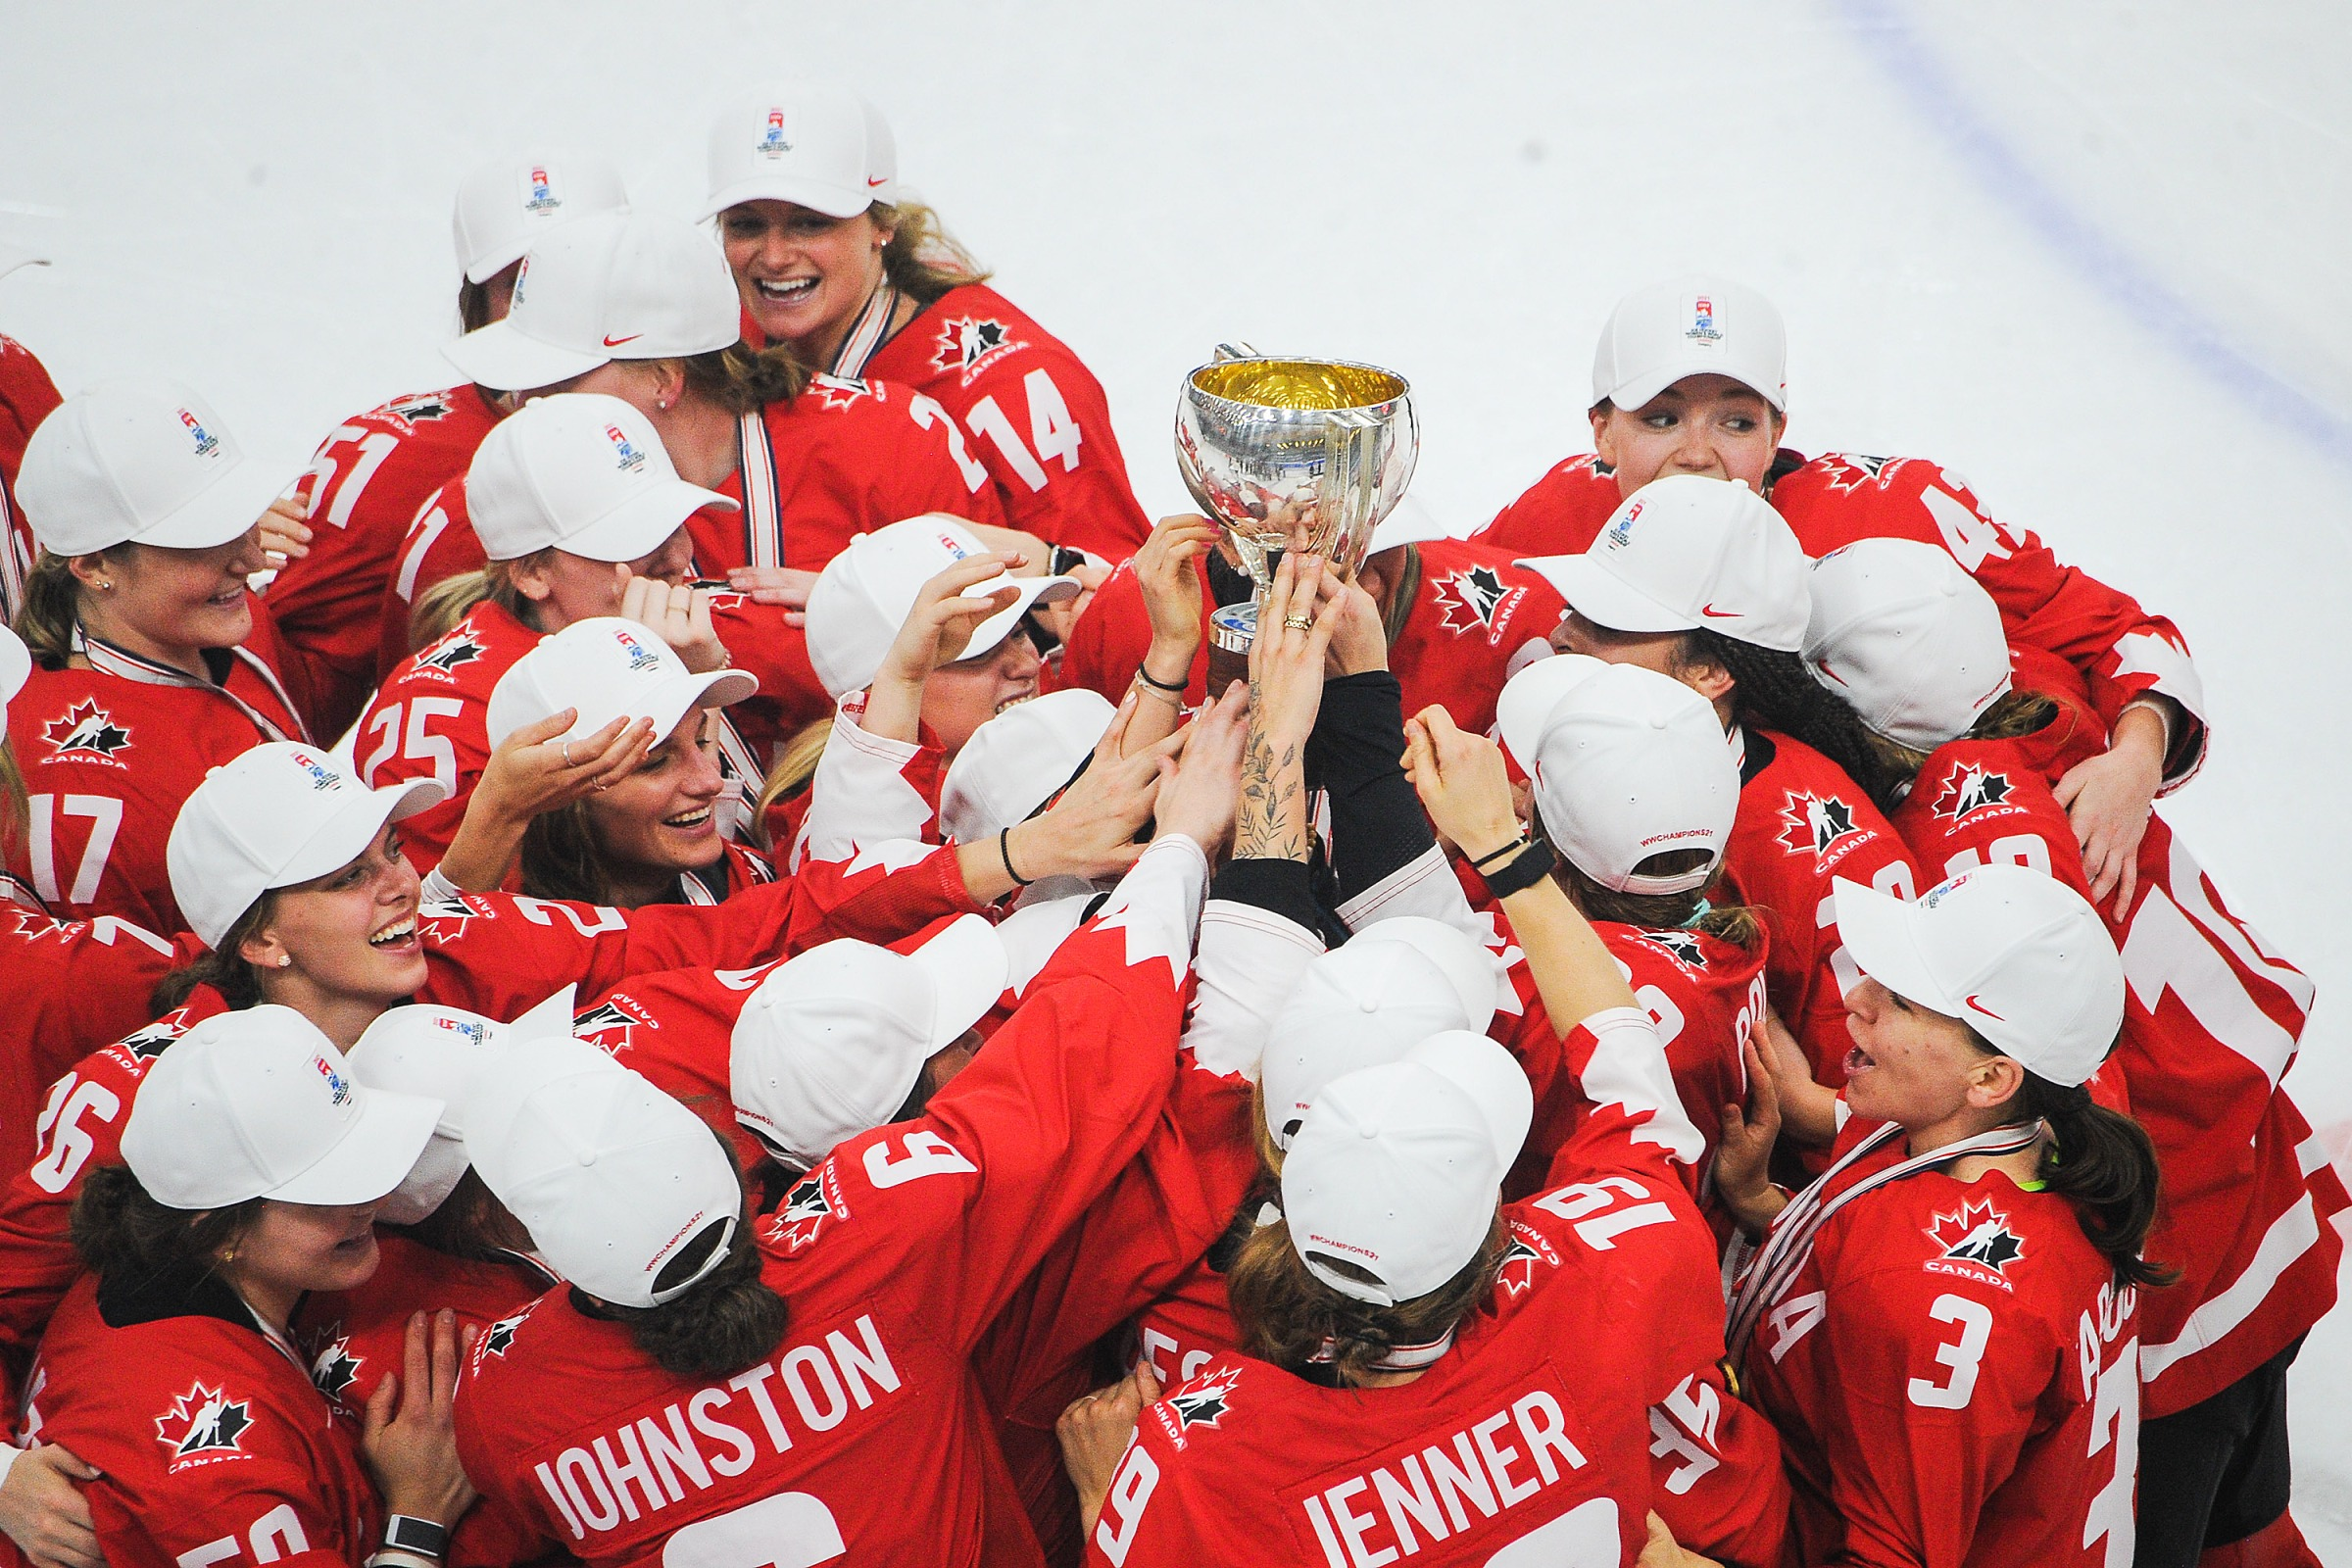 Team Canada hoists the championship trophy after their victory over United Sates in the 2021 IIHF Women's World Championship gold medal game played at WinSport Arena on August 31, 2021 in Calgary, Canada.